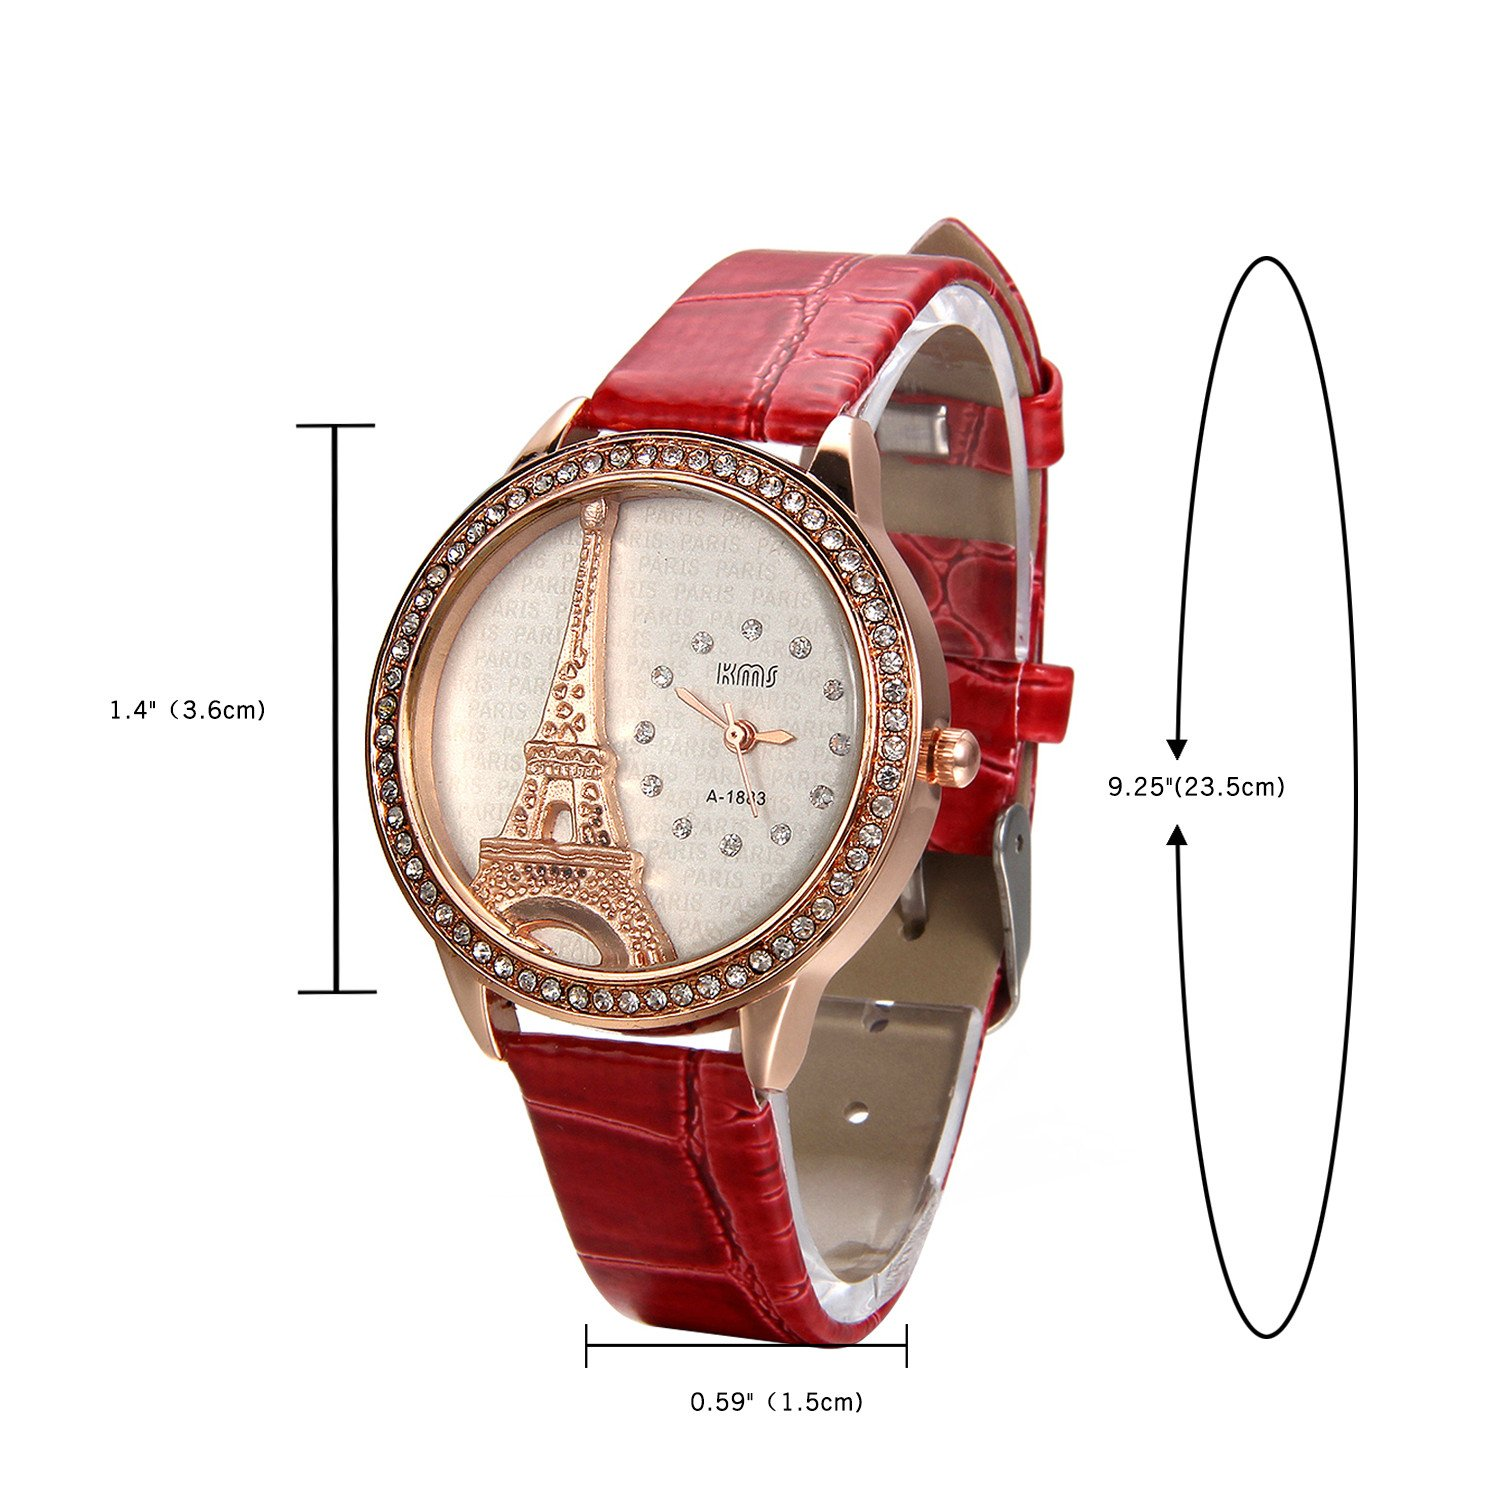 Amazon.com: JewelryWe Mother Day Gift Bling Rhinestone Accented Eiffel Tower Red Leather Watch Ladies Women Watches: Watches